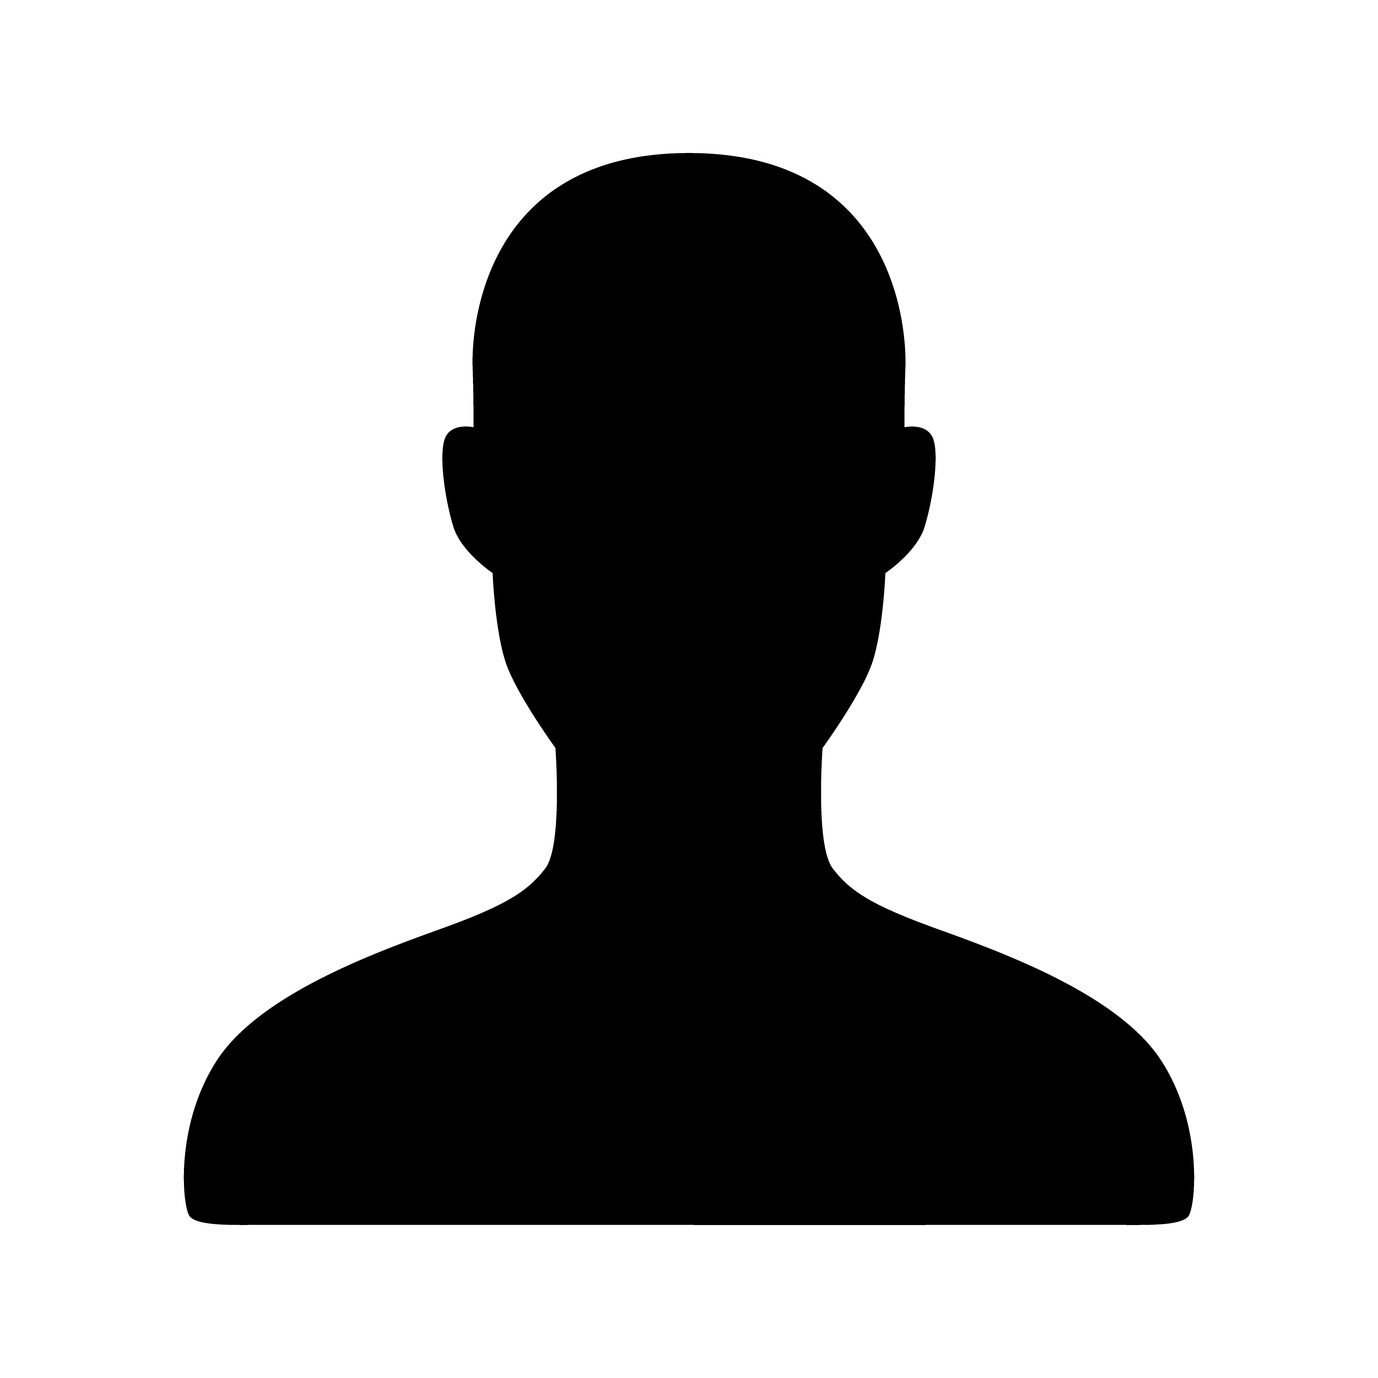 Male user account flat icon for apps and websites